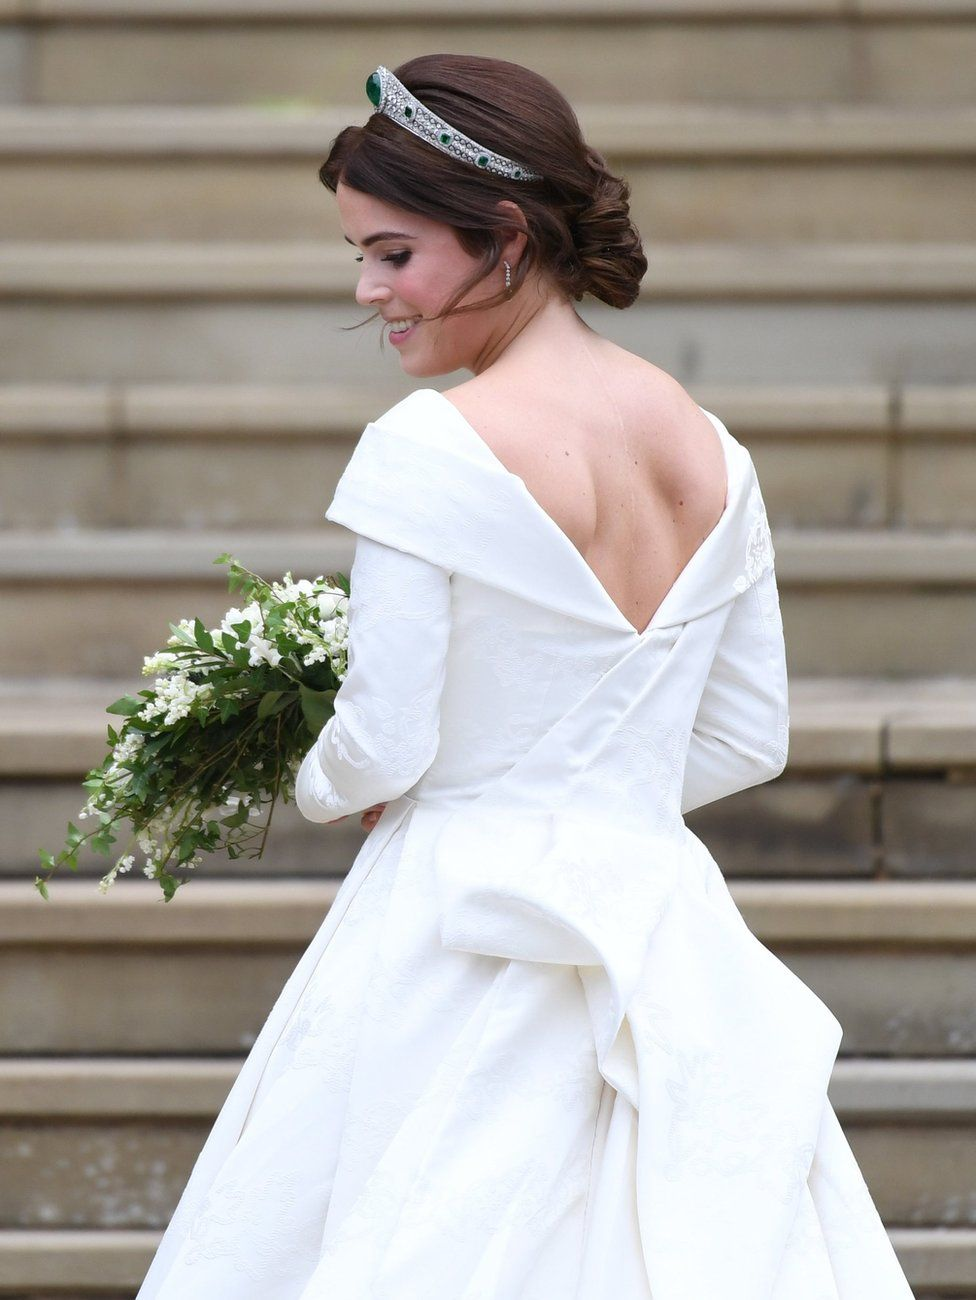 Beautiful Pictures Of British Royal Wedding Of Princess